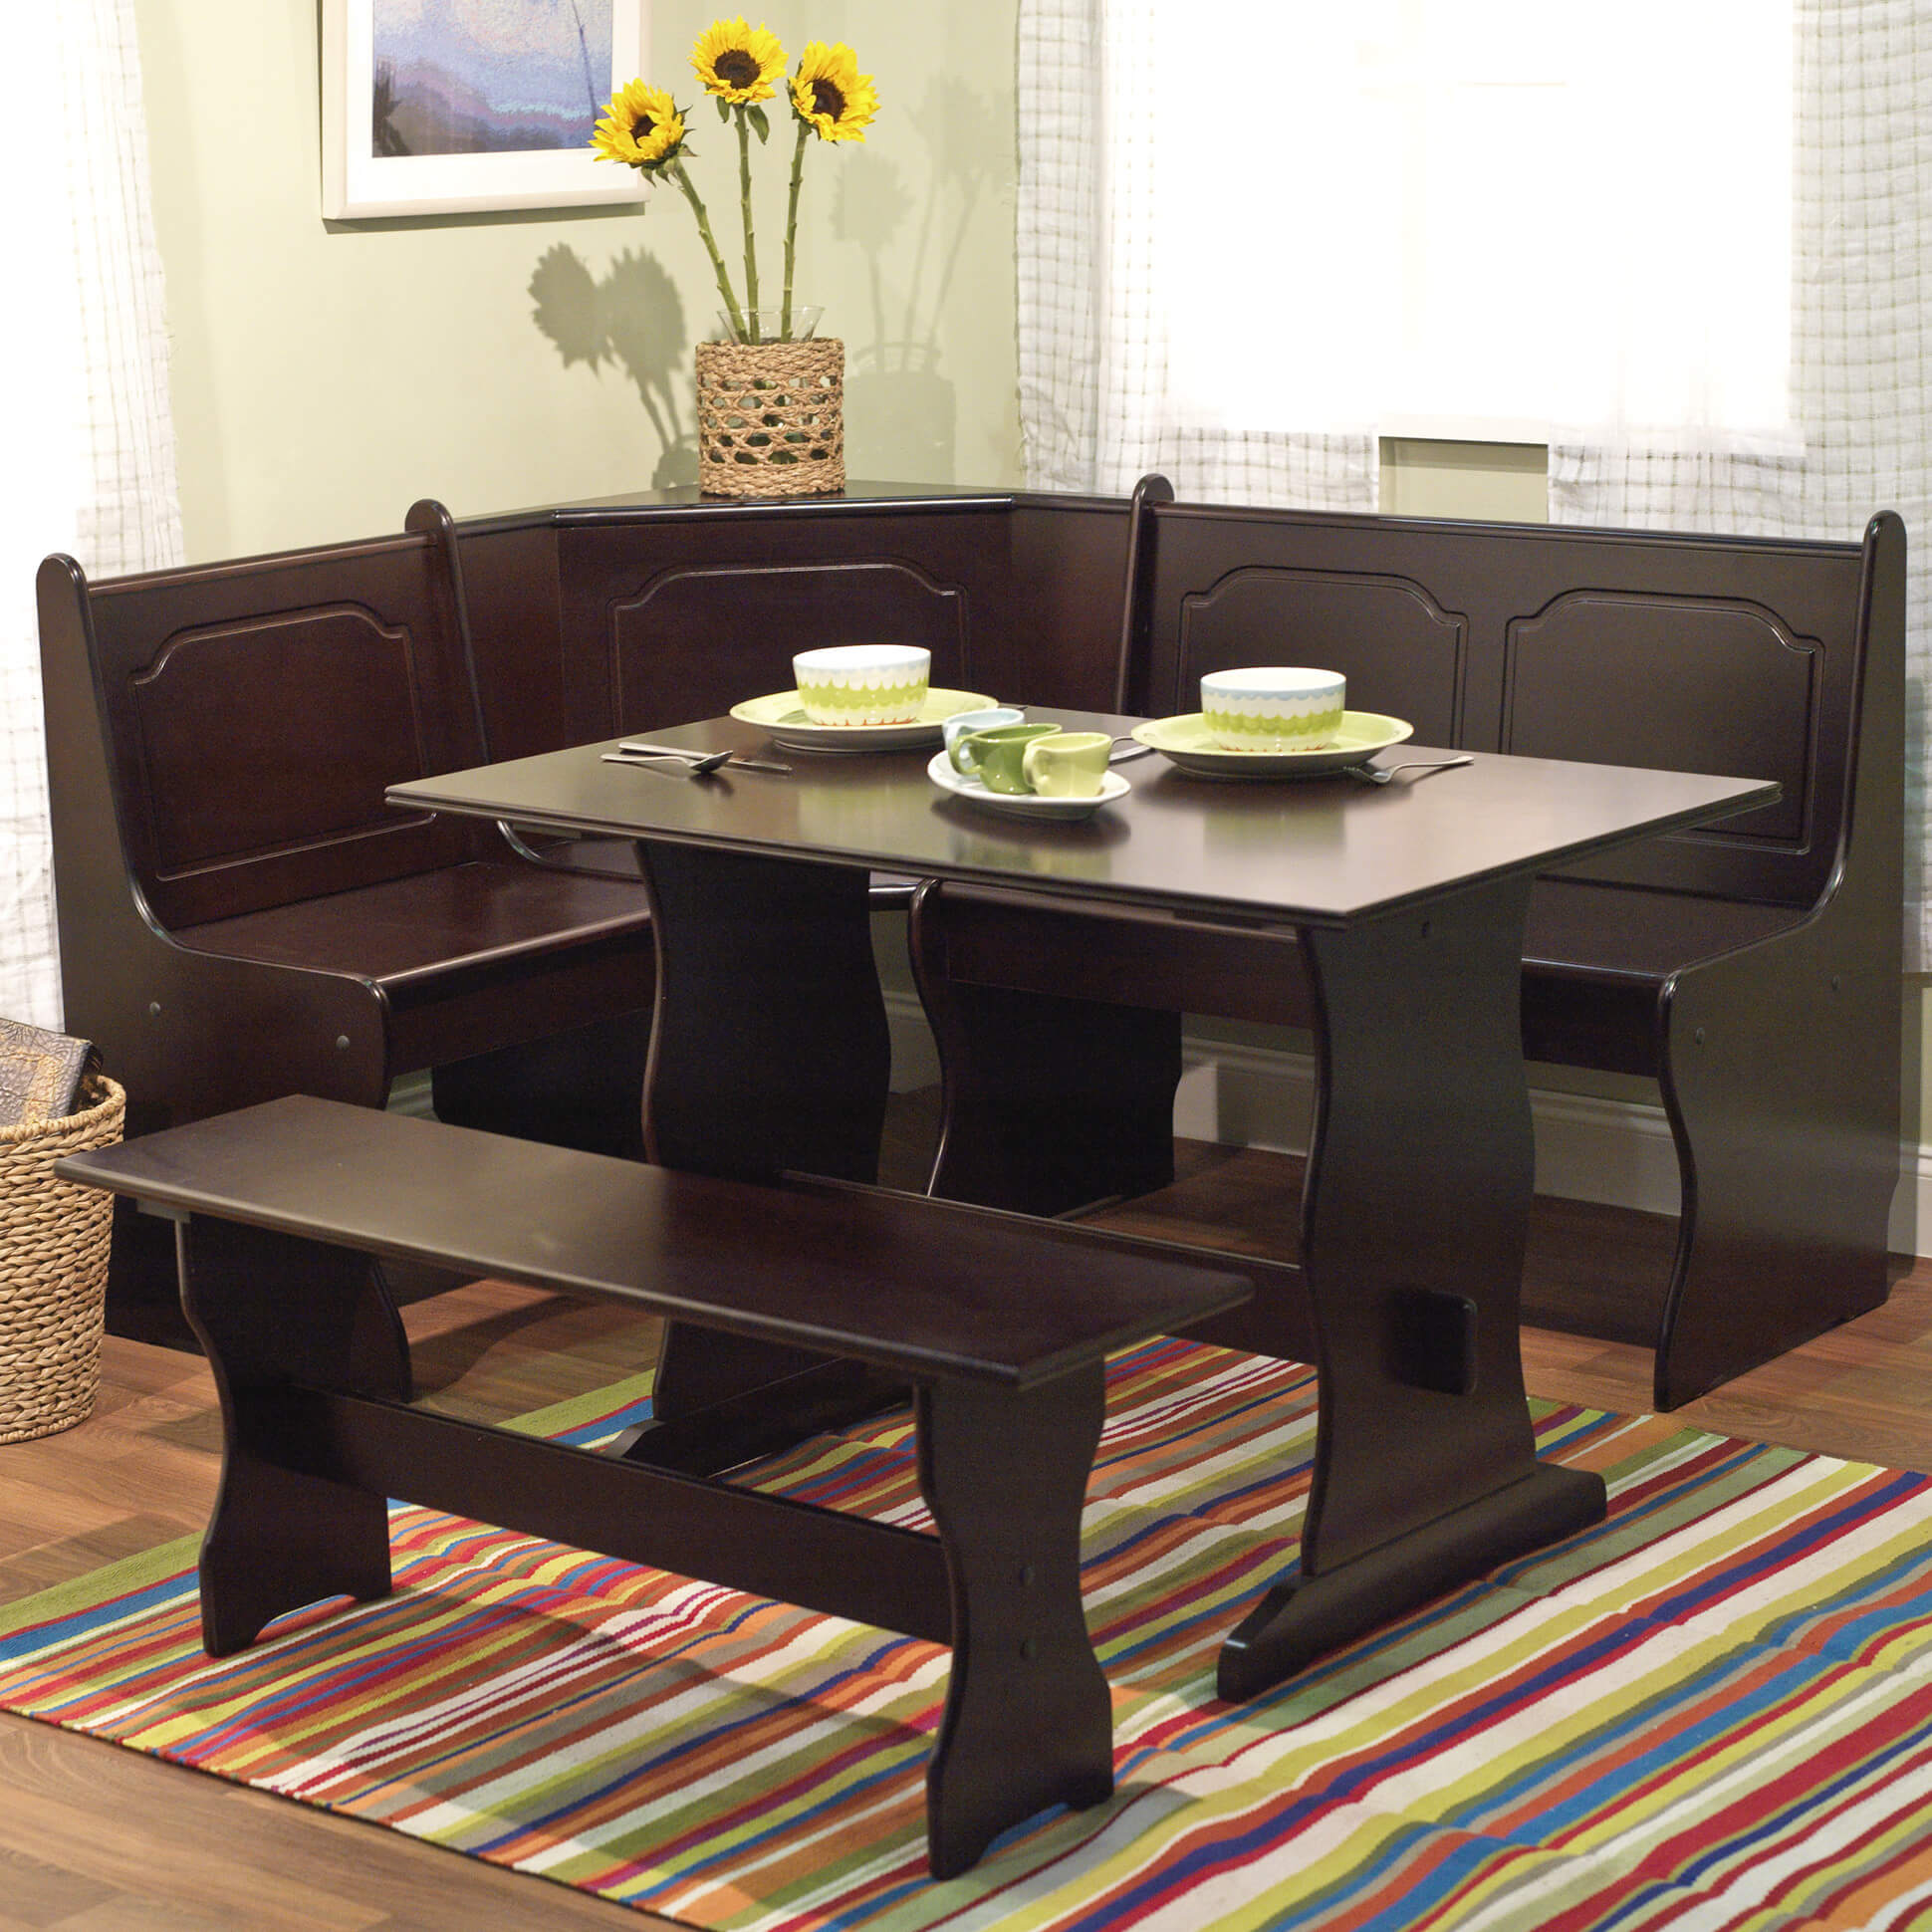 Nook Dining Tables Chelsea Dining Nook With Nook Dining: 21 Space-Saving Corner Breakfast Nook Furniture Sets (BOOTHS